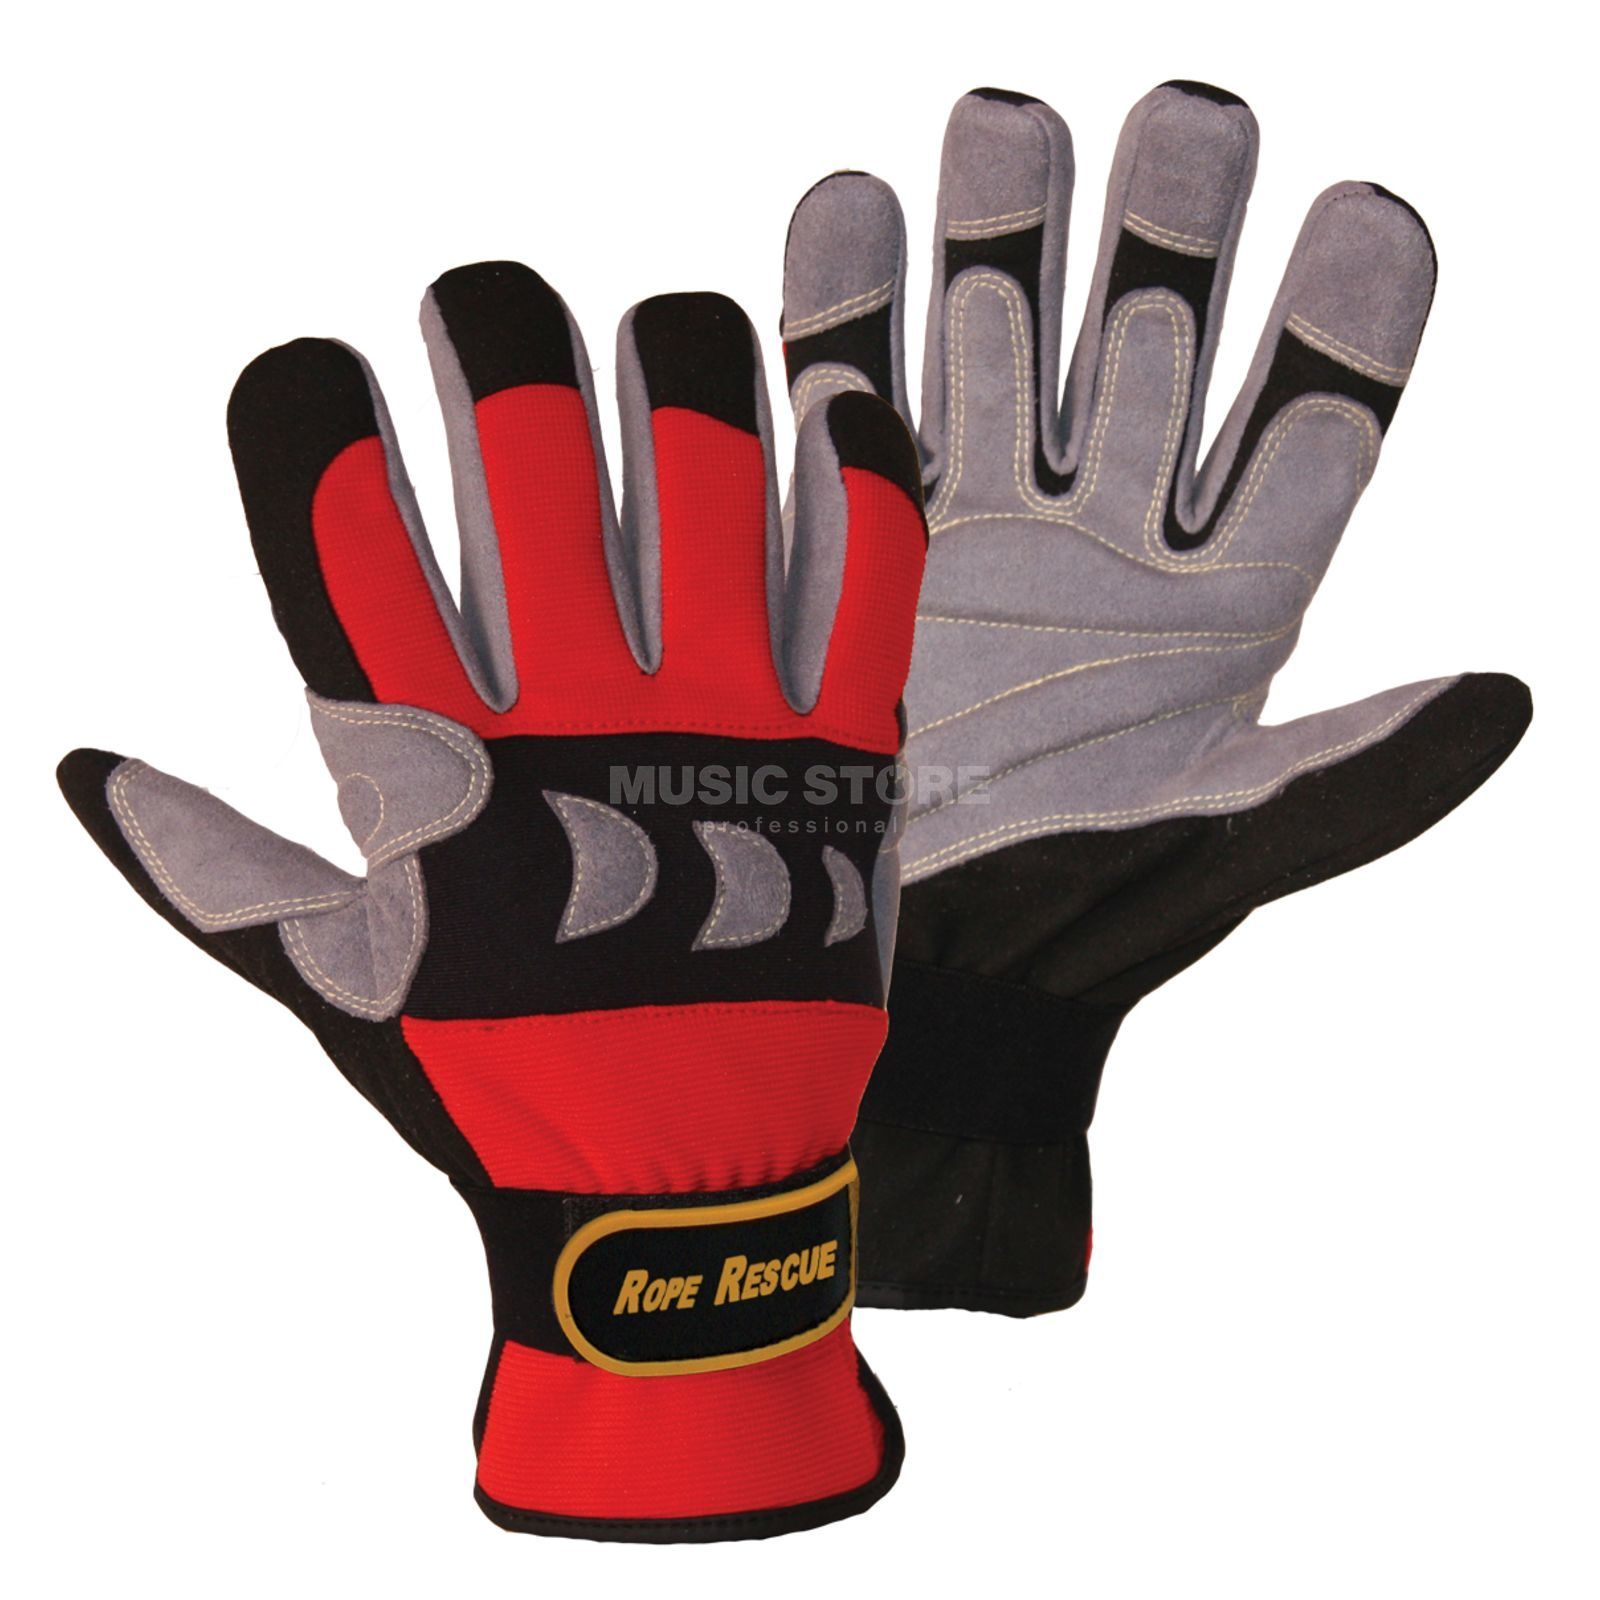 FerdyF. Rope Rescue Gloves, Gr.XXL red-grey Produktbillede